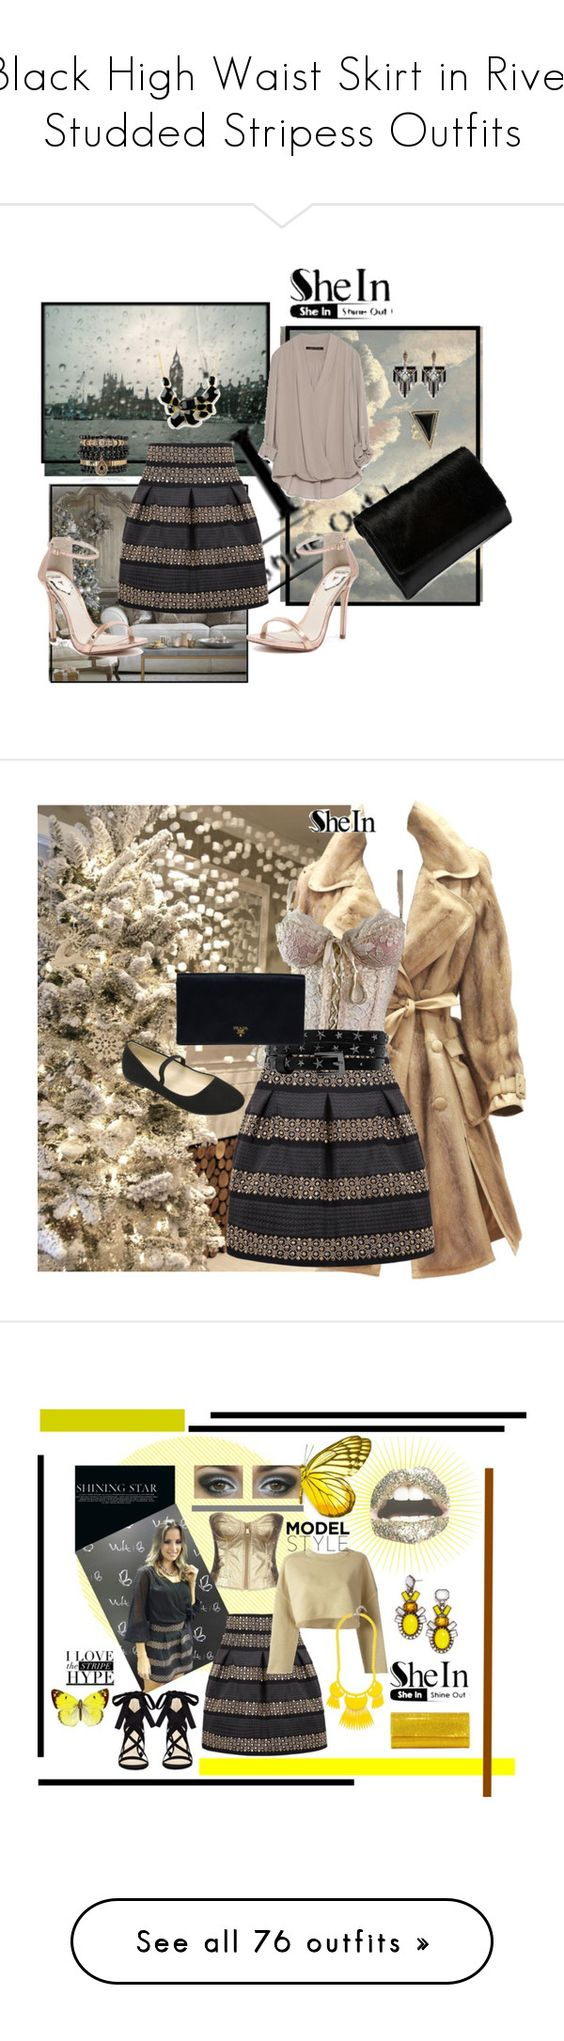 """""""Black High Waist Skirt in Rivet Studded Stripess Outfits"""" by fairywitch ❤ liked on Polyvore featuring Zara, Windsor Smith, House of Harlow 1960, Samantha Wills, Emi Jewellery, Lulu Frost, Manfield, women's clothing, women and female"""